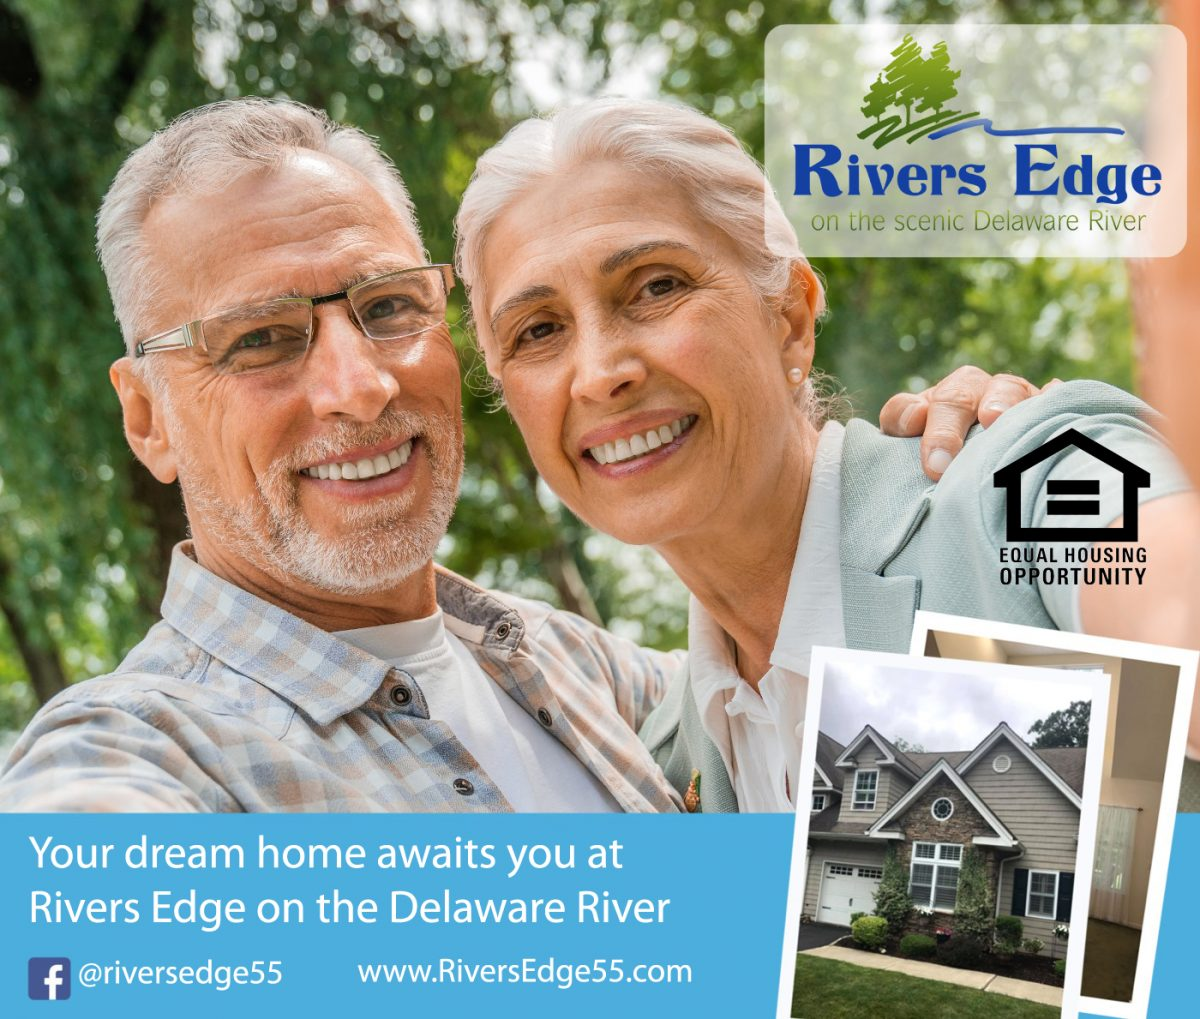 RIVERS EDGE ON THE DELAWARE RIVER_NEAR YOU